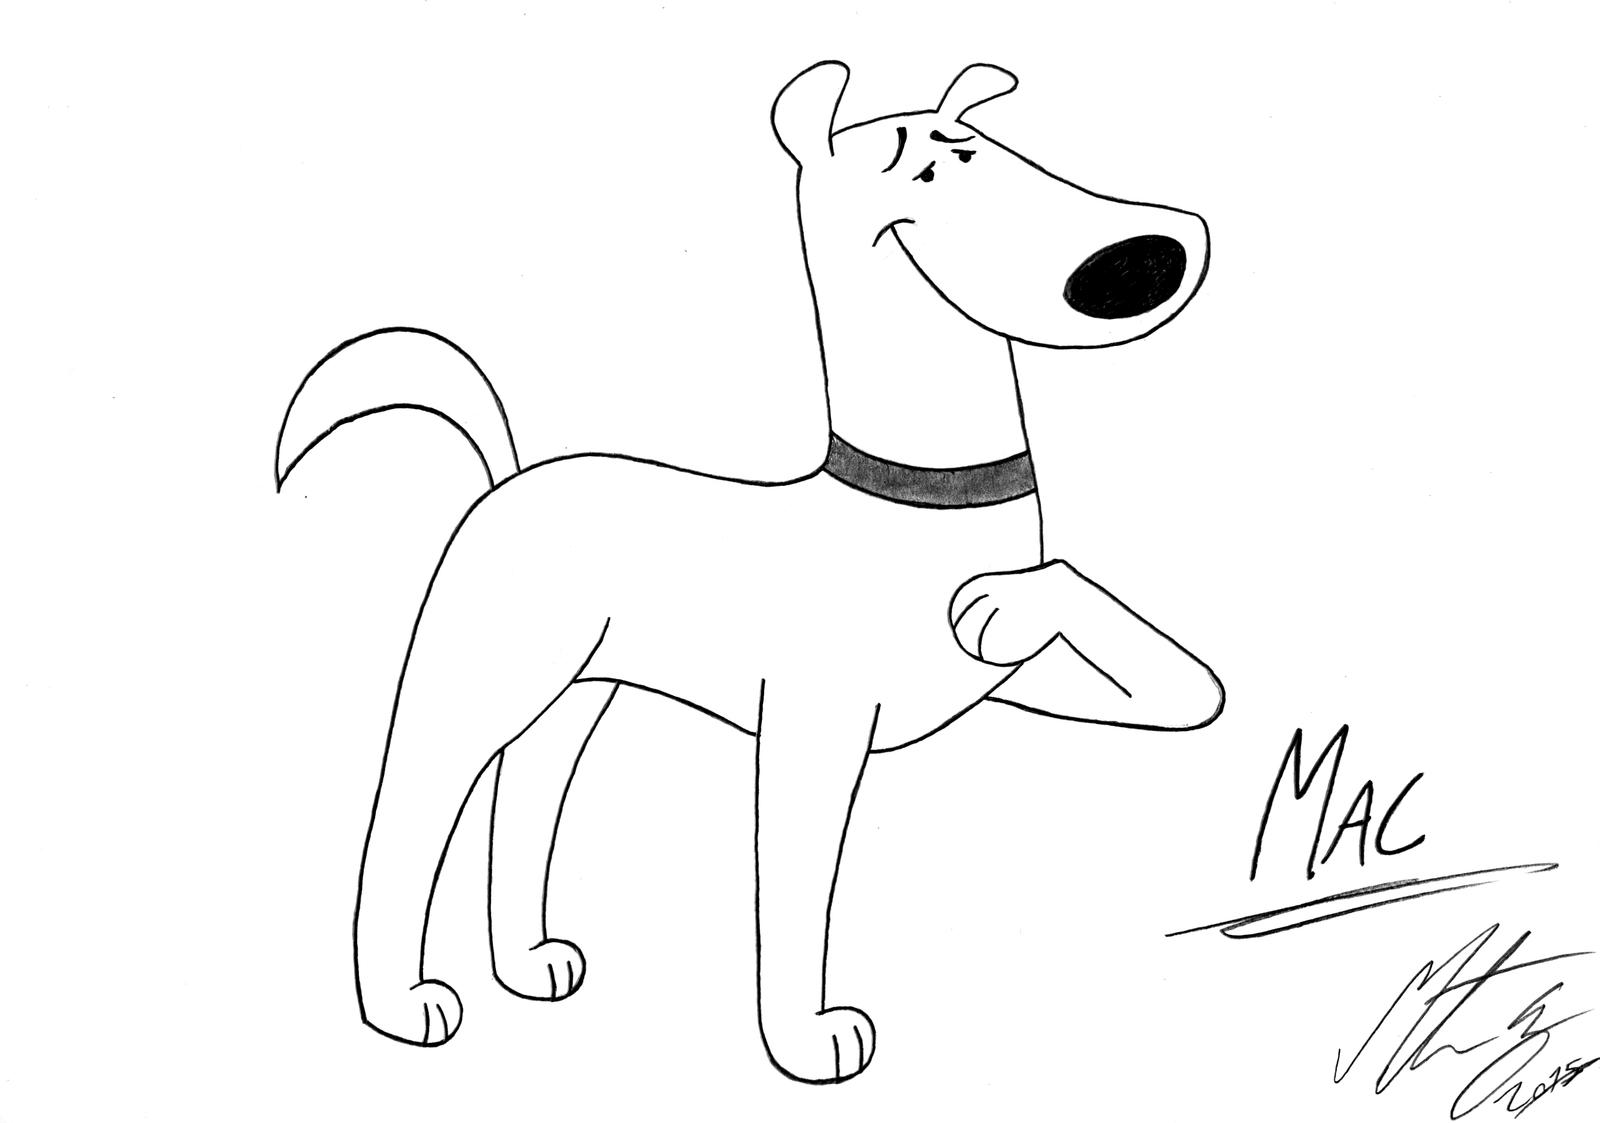 Is Machiavelli From Clifford The Big Red Dog A Greyhound